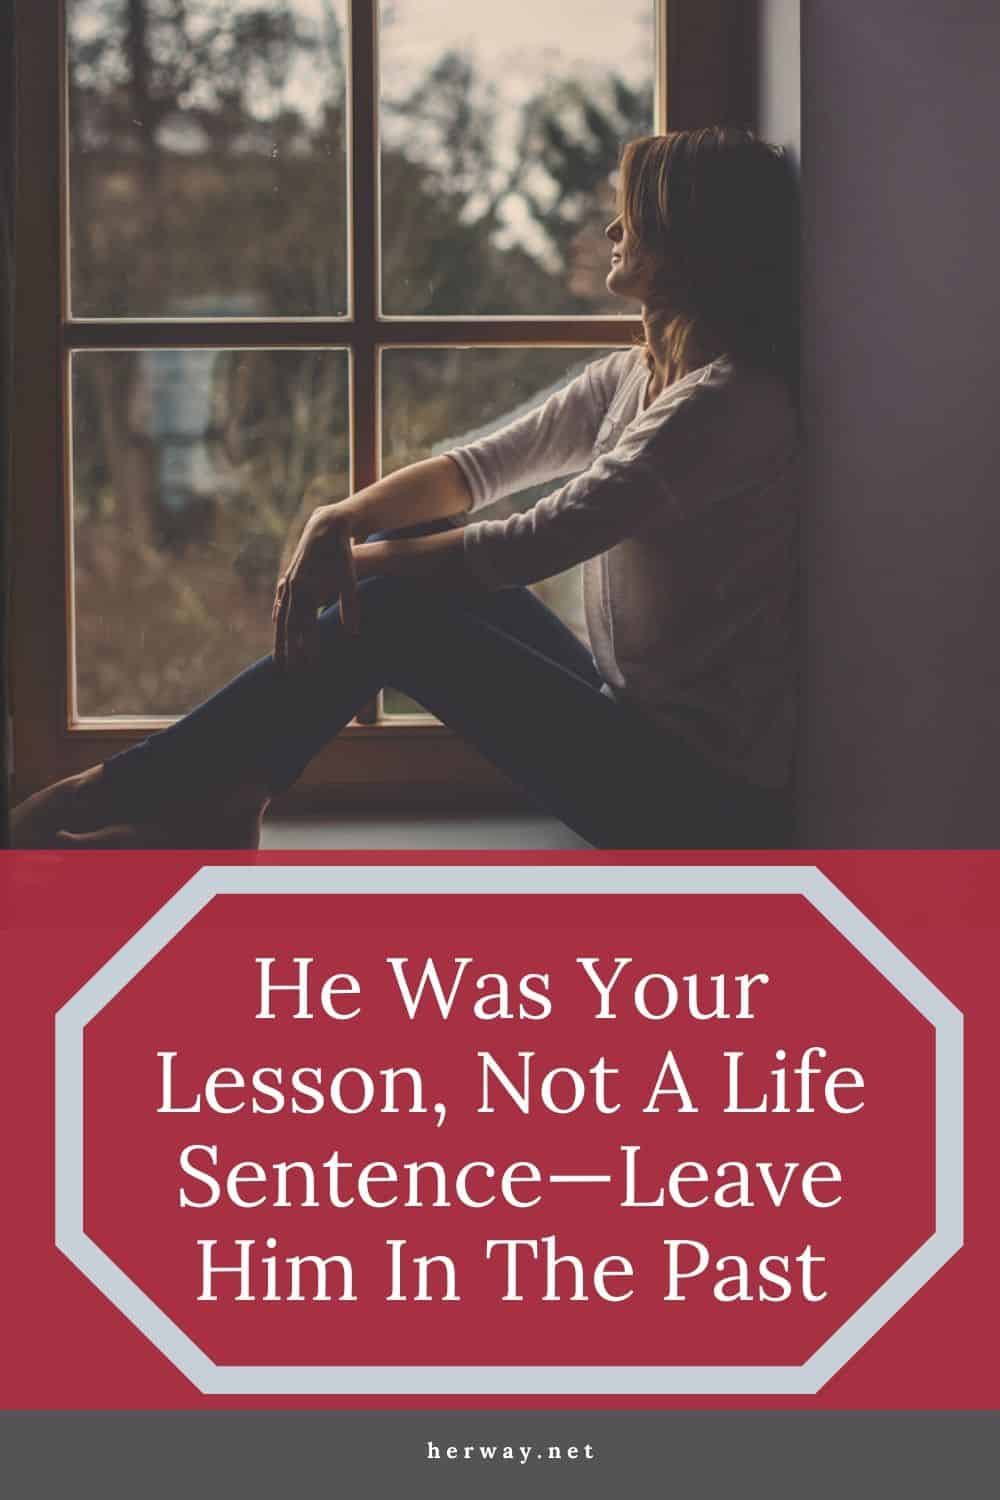 He Was Your Lesson, Not A Life Sentence—Leave Him In The Past